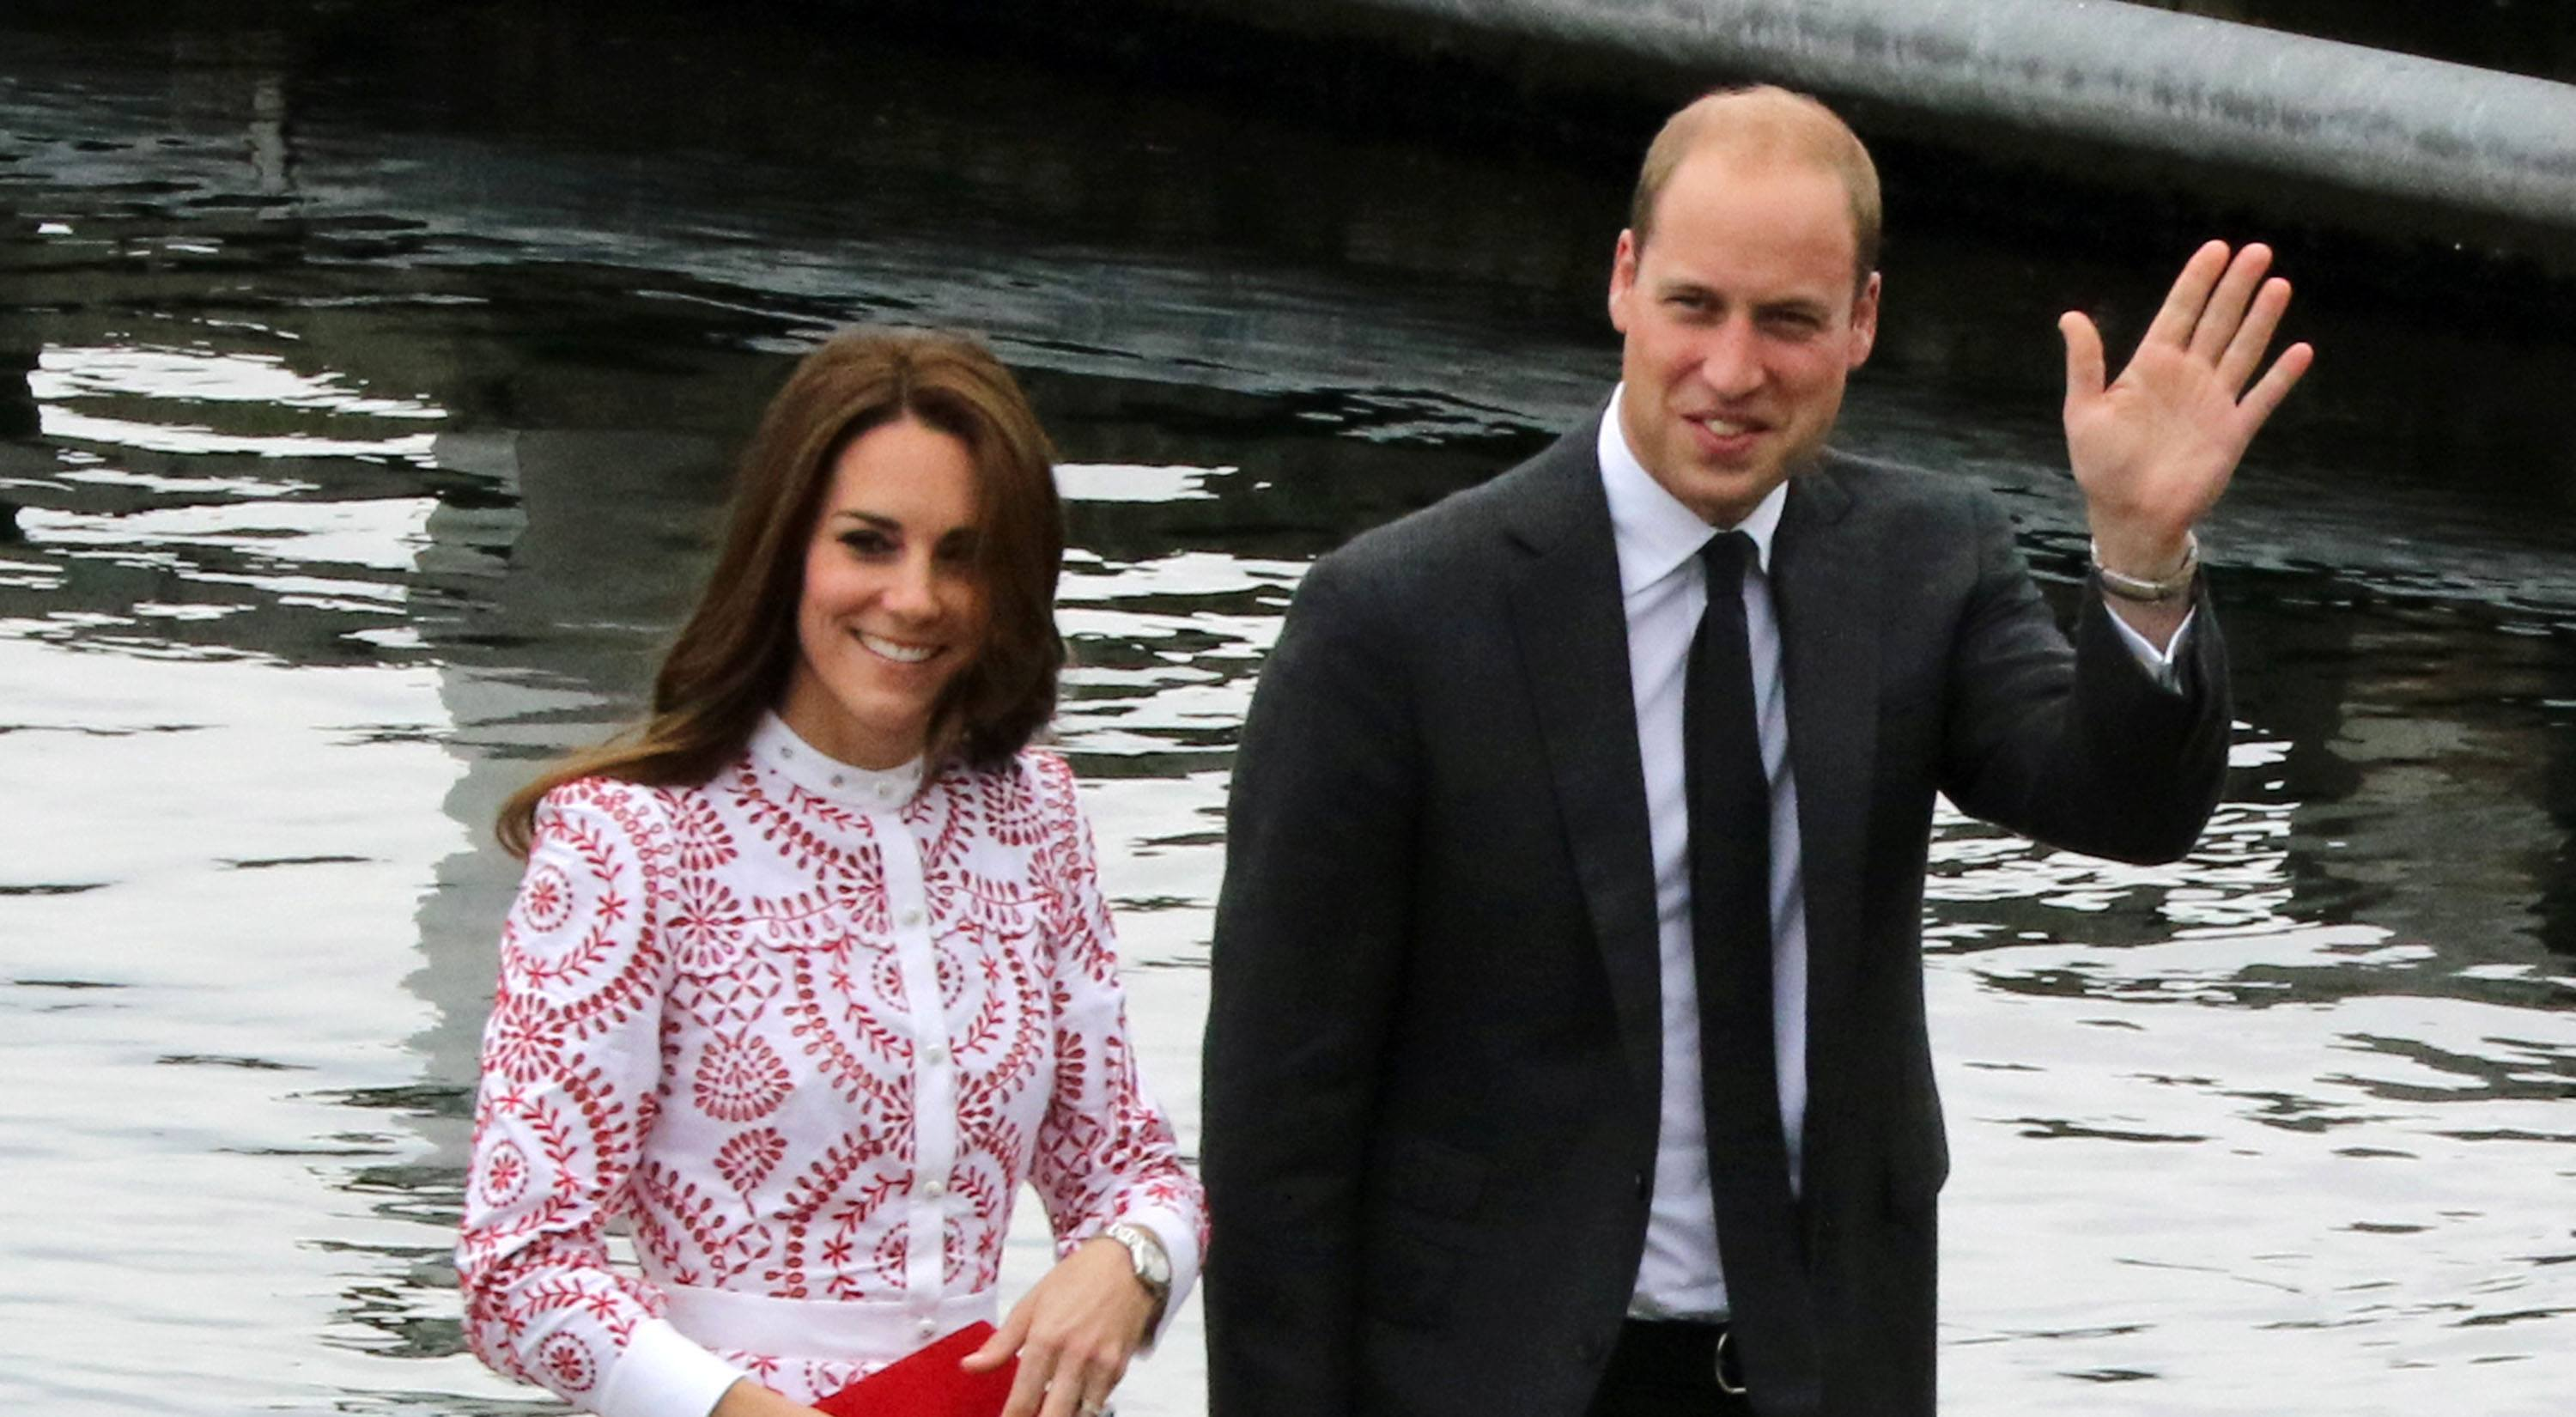 Royal tour: William and Kate draw huge crowds in Vancouver (VIDEO)